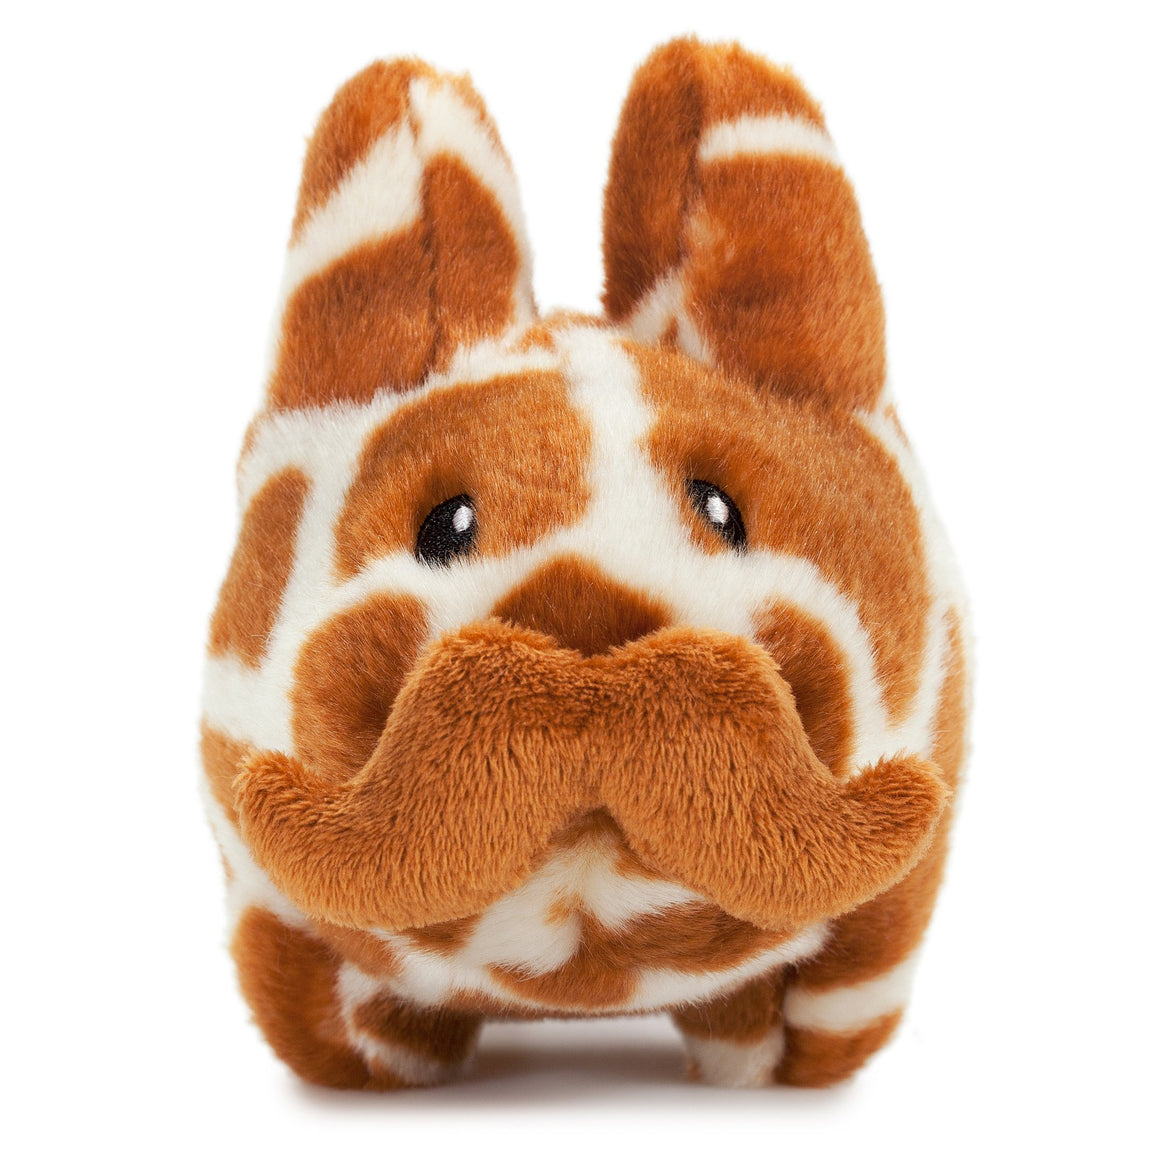 "Giraffe 7"" Happy Labbit Plush - Kidrobot"